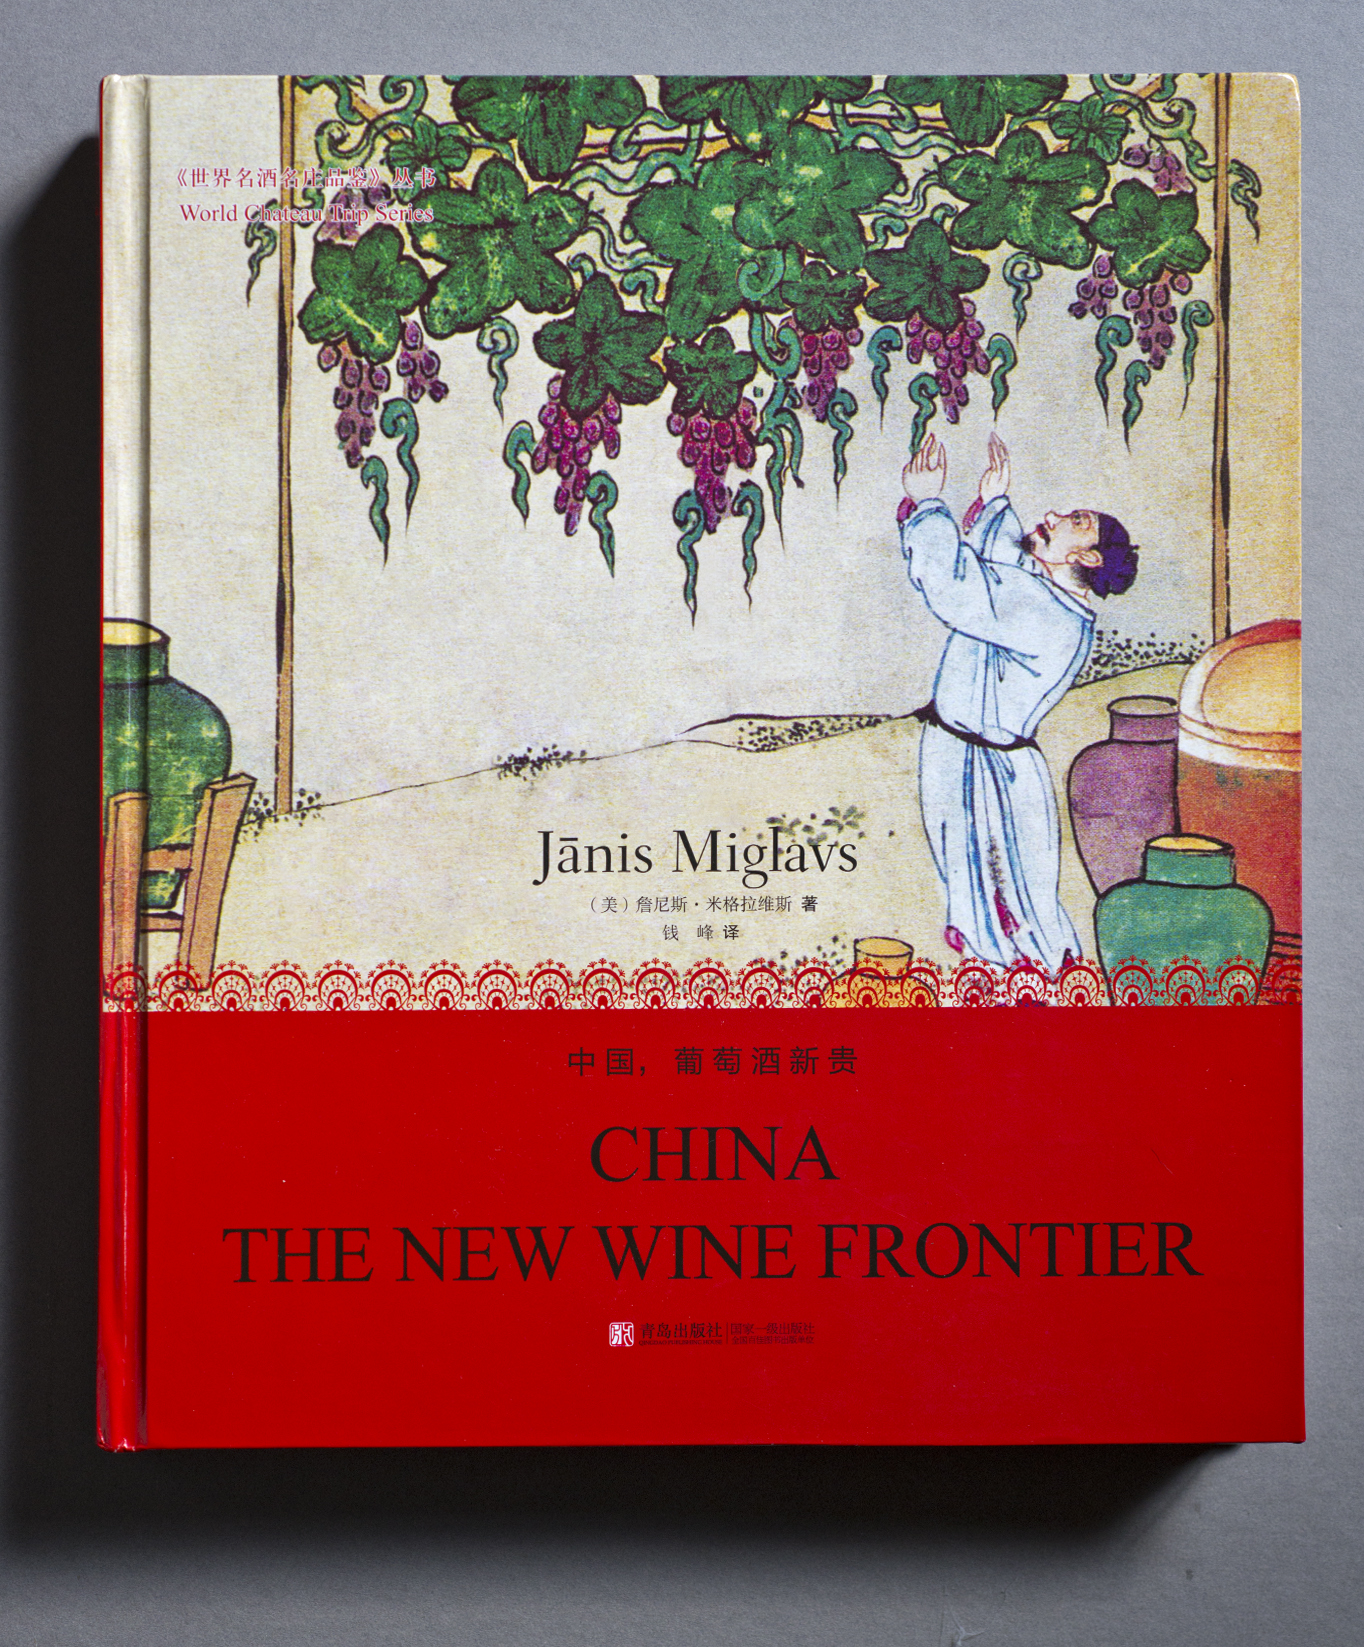 China The New Wine Frontier - Winner of Gourmand's the Best in the World Award. It  started as a personal project to explore China and the beginnings of a wine industry.  A Chinese publisher asked me to write and photograph a table-top book.I wrote it for the Chinese market and is only available in China at the moment.